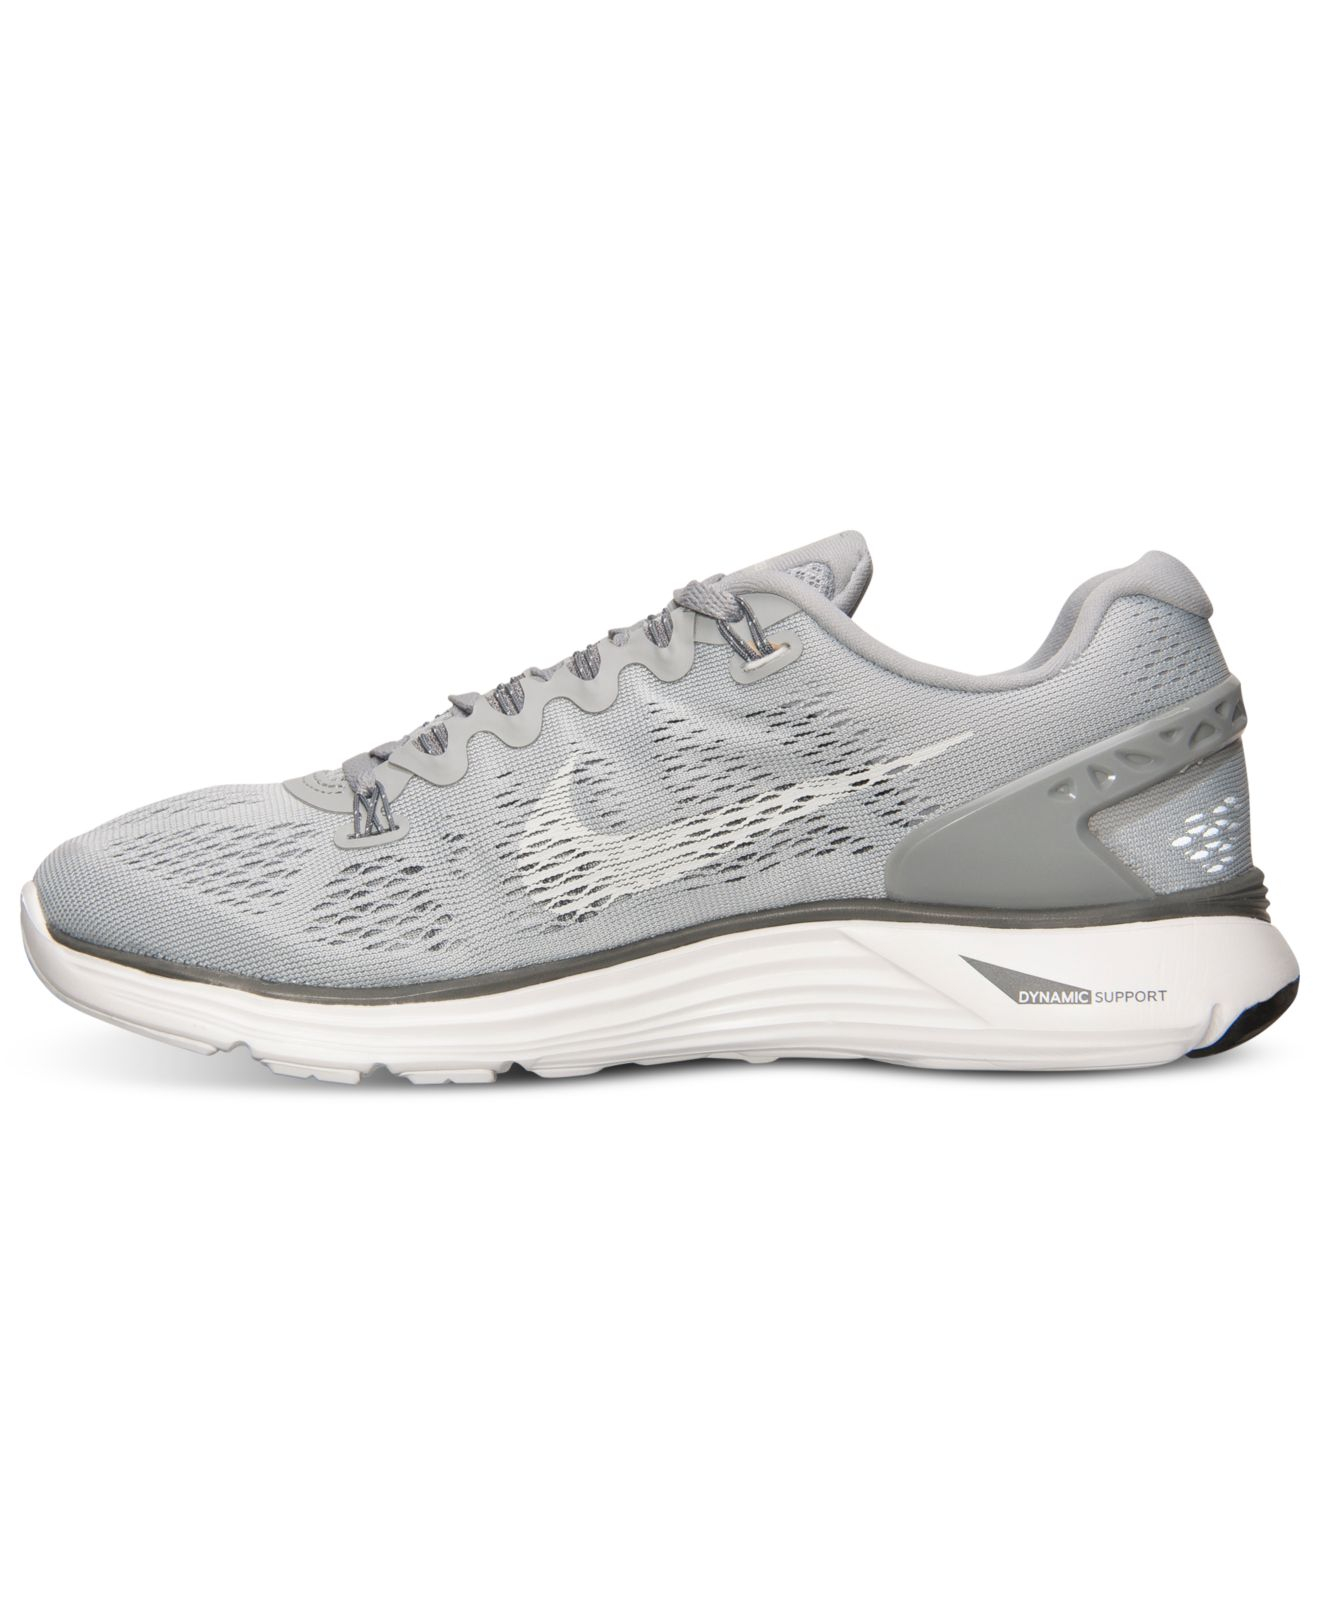 newest 4b1e2 40817 Lyst - Nike Women S Lunarglide+ 5 Running Sneakers From Finish Line ...